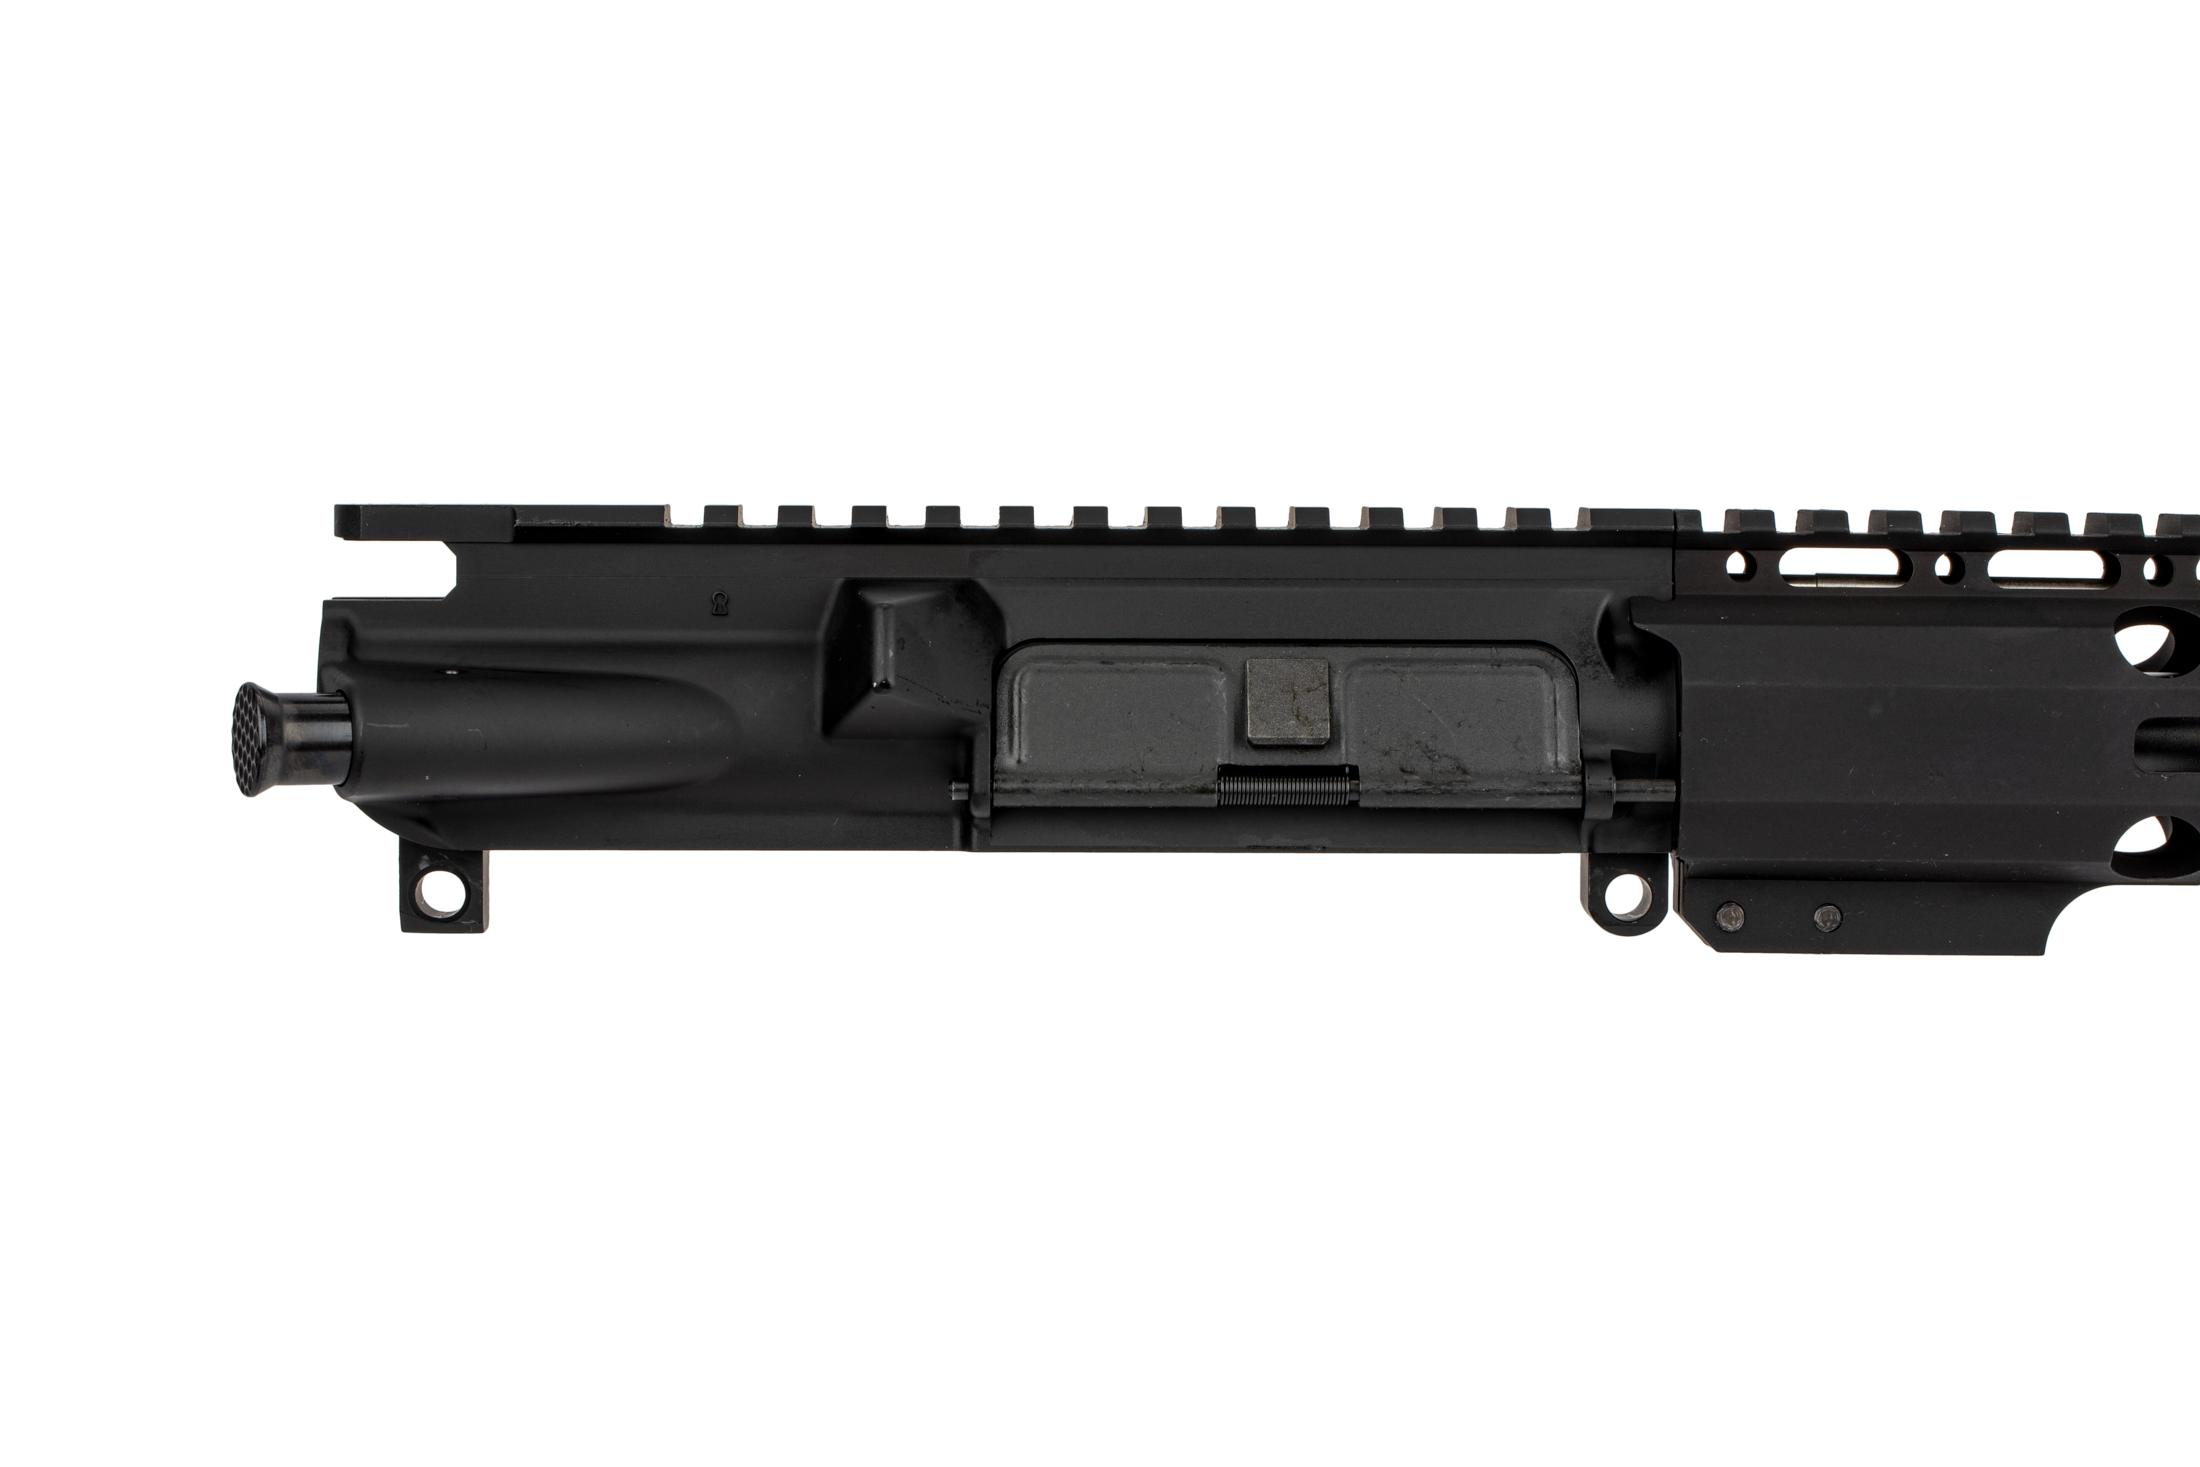 Radical Firearms 16in barreled 5.56 NATO Upper with PA exclusive M-LOK rail is built on standard M4-style upper receiver